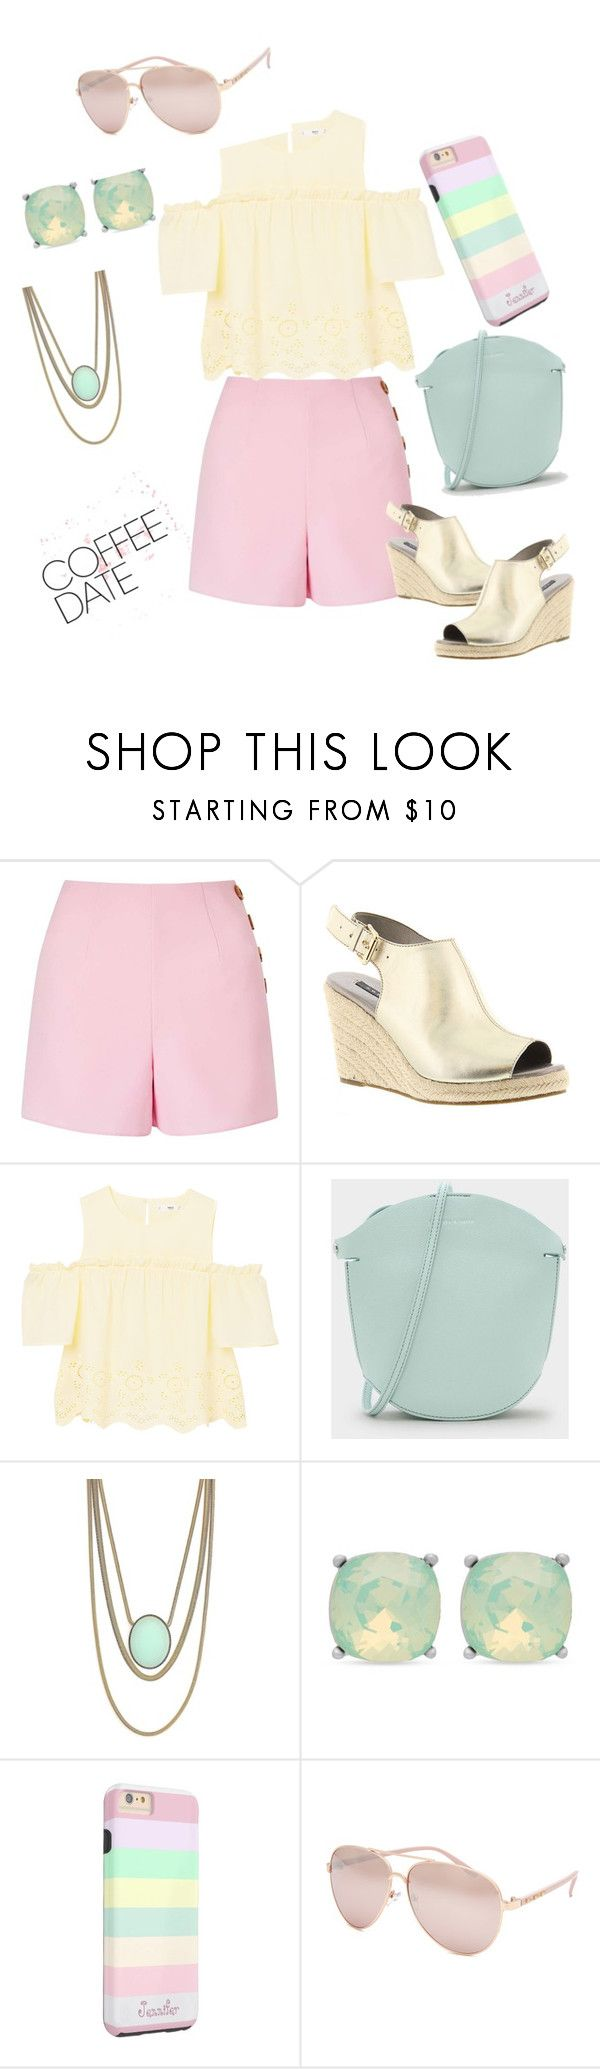 """Sunday Brunch"" by stylcents ❤ liked on Polyvore featuring Miss Selfridge, Array, MANGO, CHARLES & KEITH, Jessica Simpson, Spartina 449 and Full Tilt"